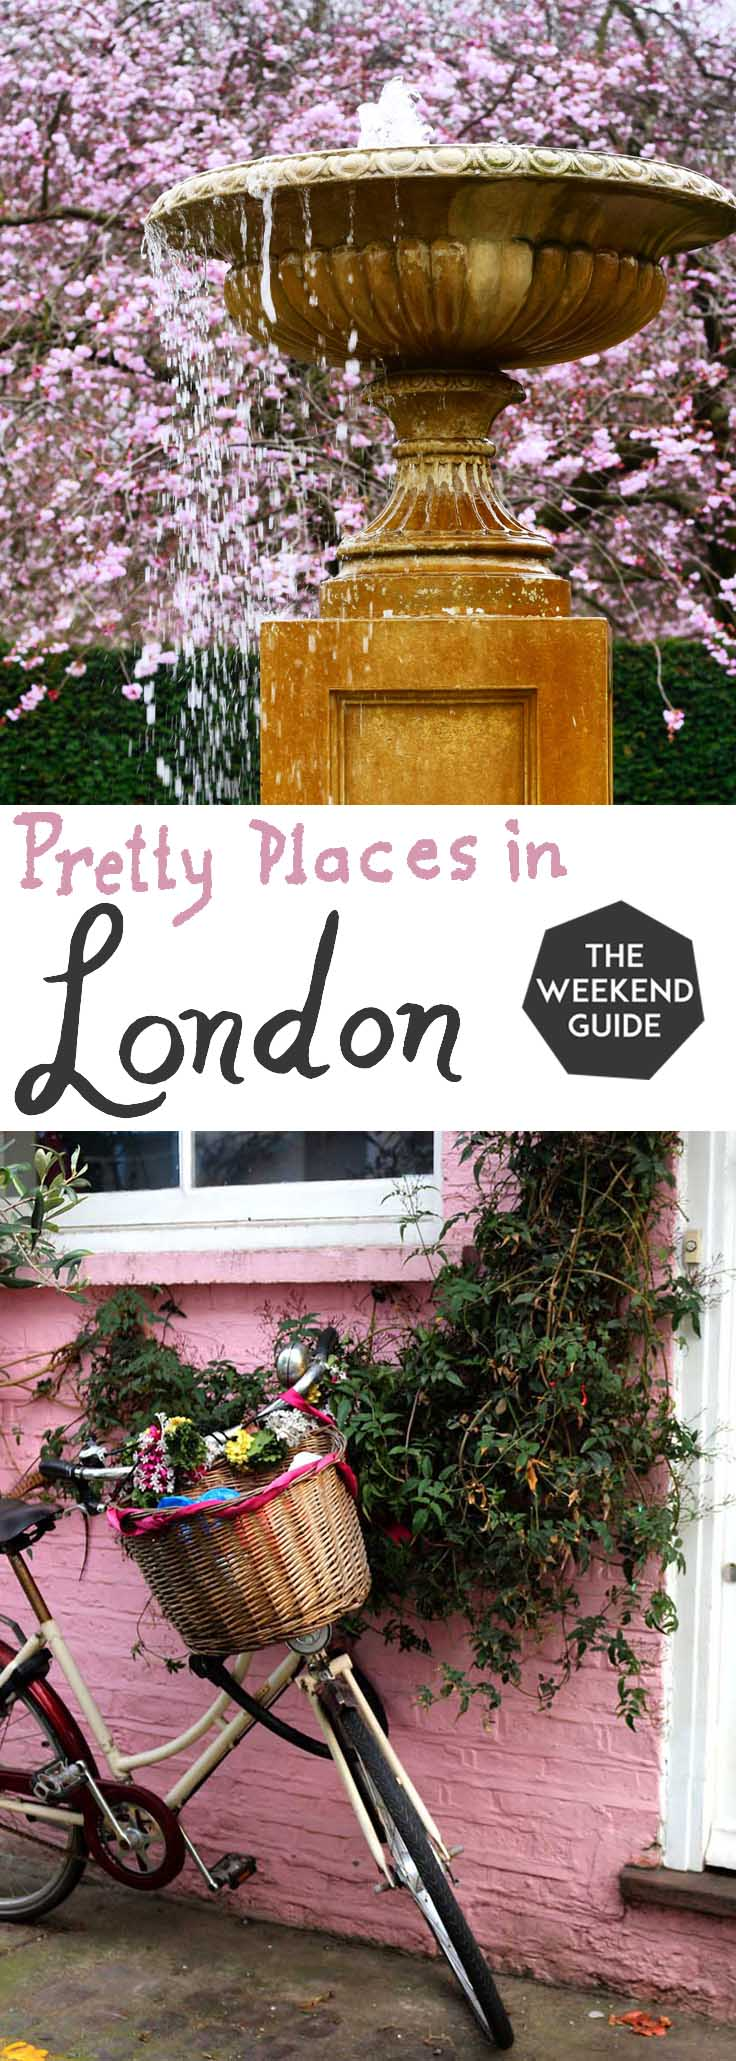 A bustling metropolis, London might not spring to mind when you think of pretty places. But there are plenty of beautiful areas to go for a wander in this fabulous city.  Here are some of my favorite pretty places in London. - theweekendguide.com